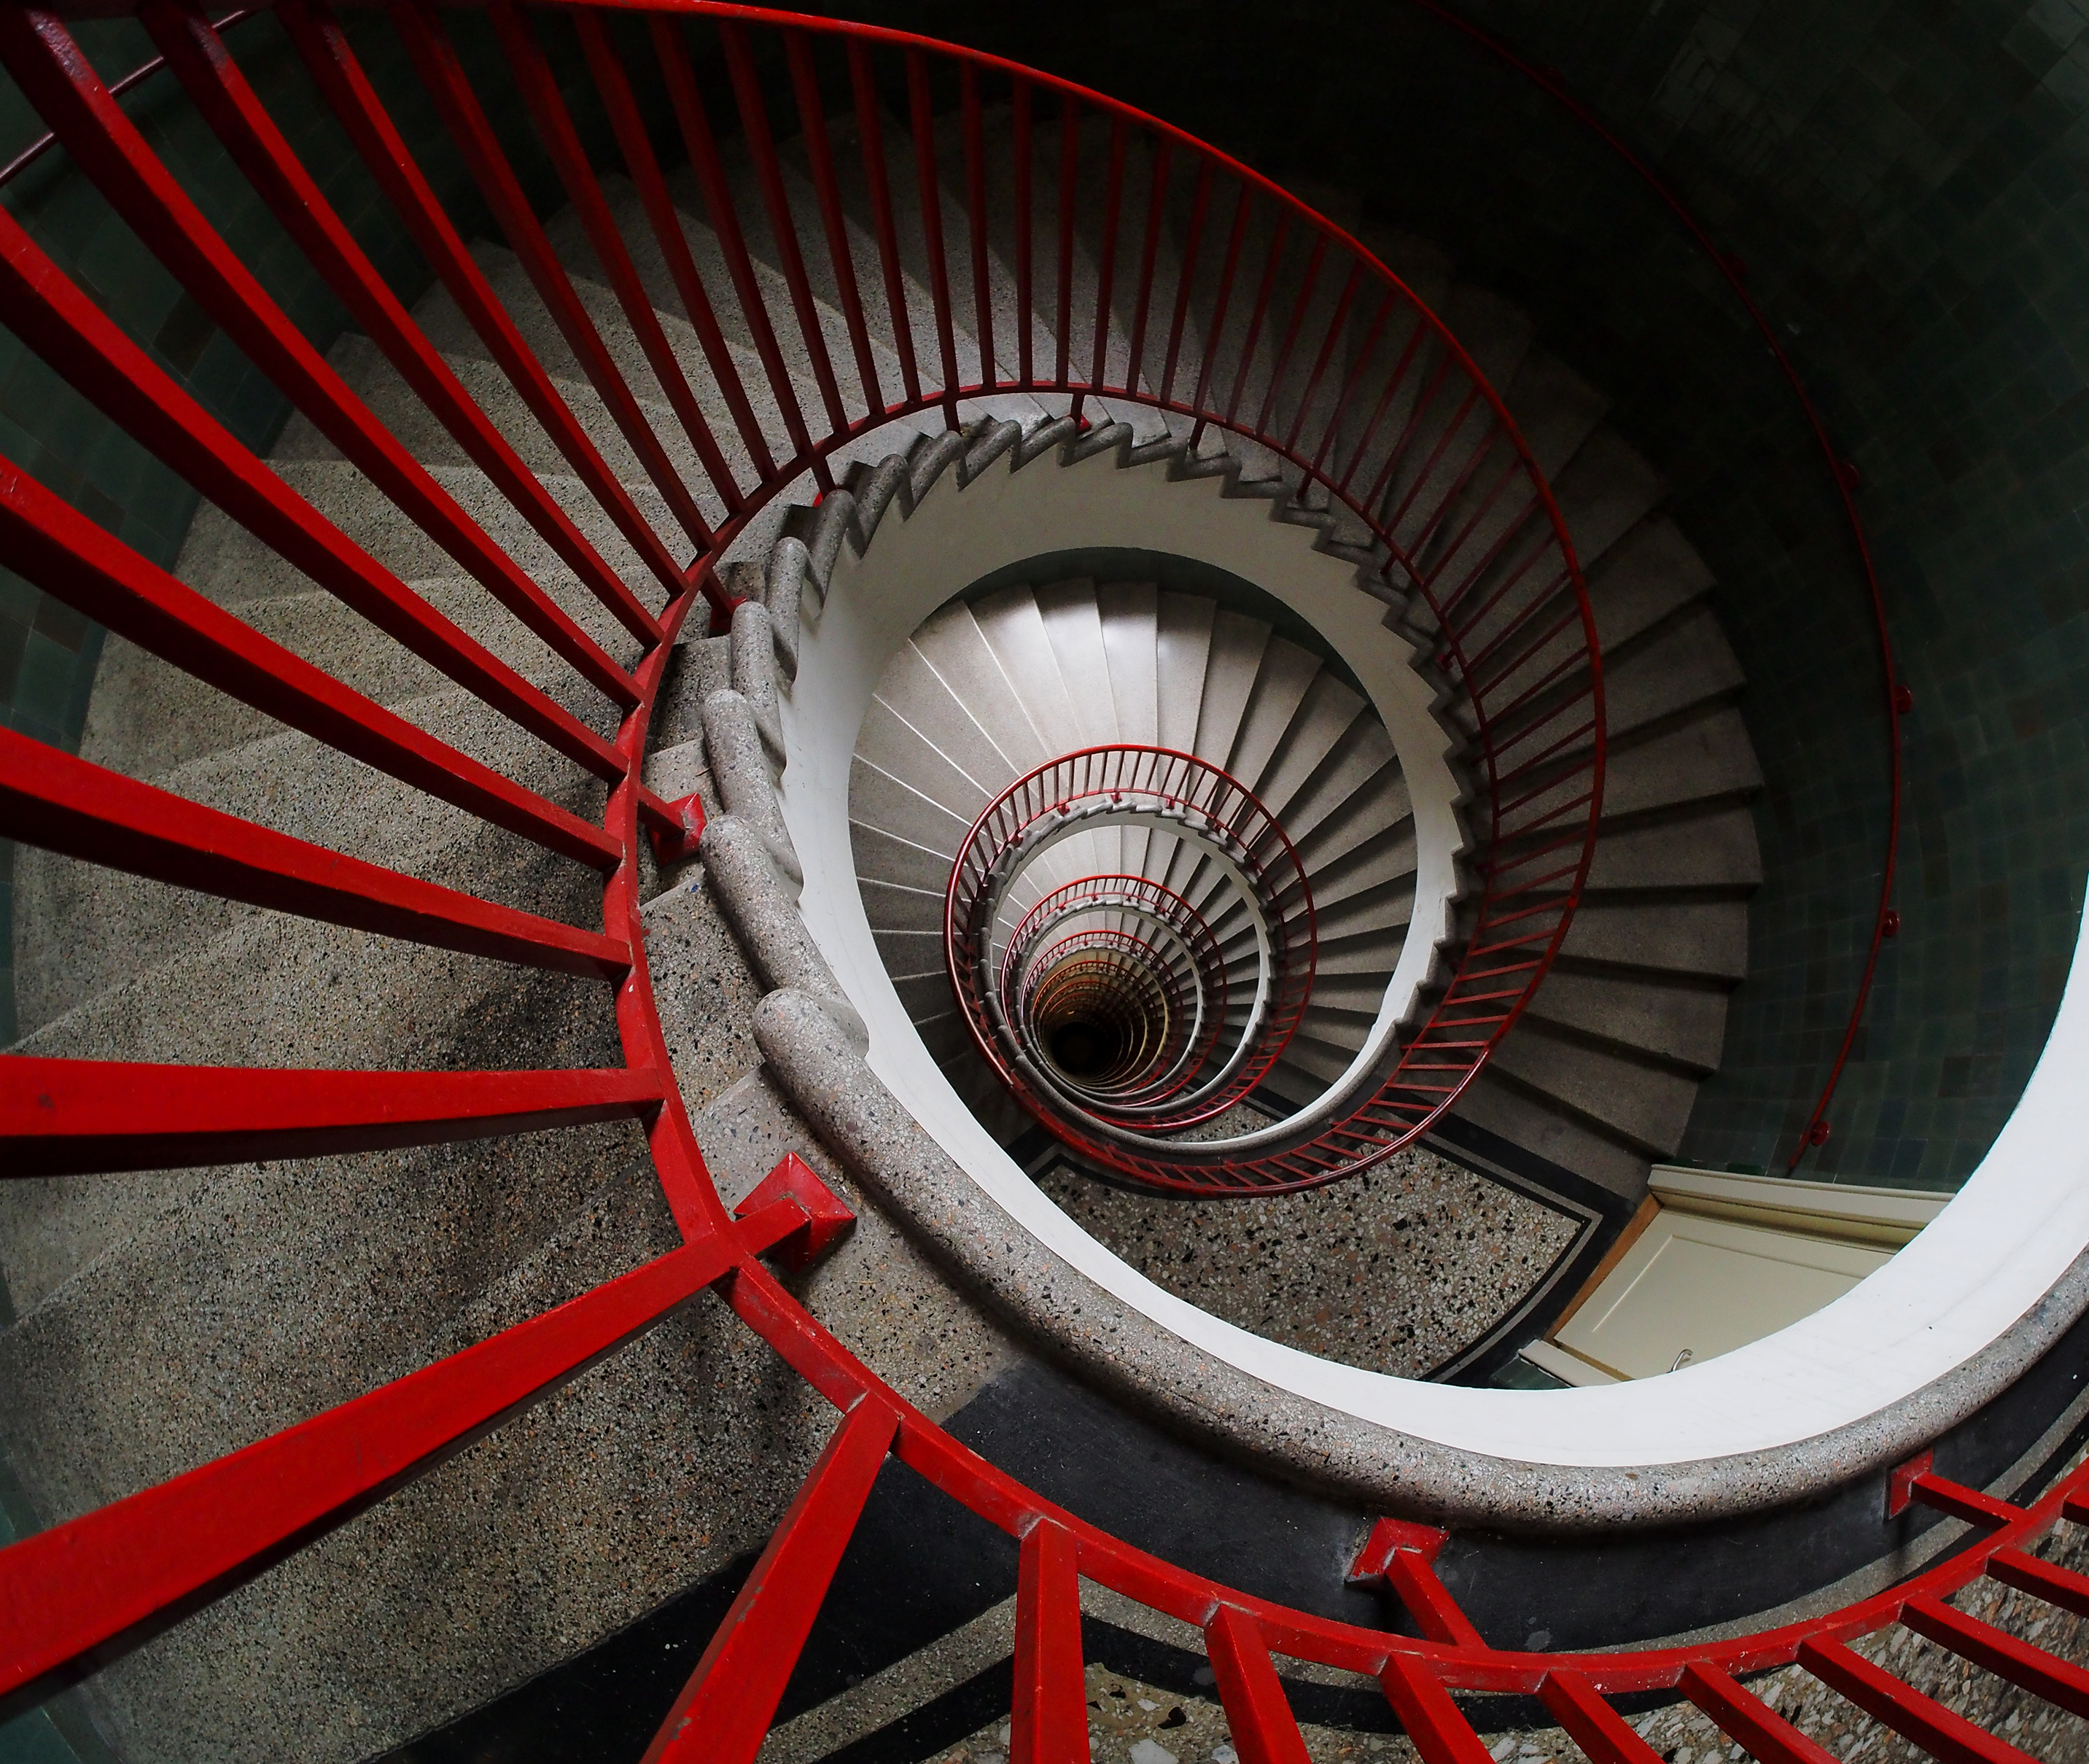 File:Spiral stairs (спирално степениште).jpg - Wikimedia Commons